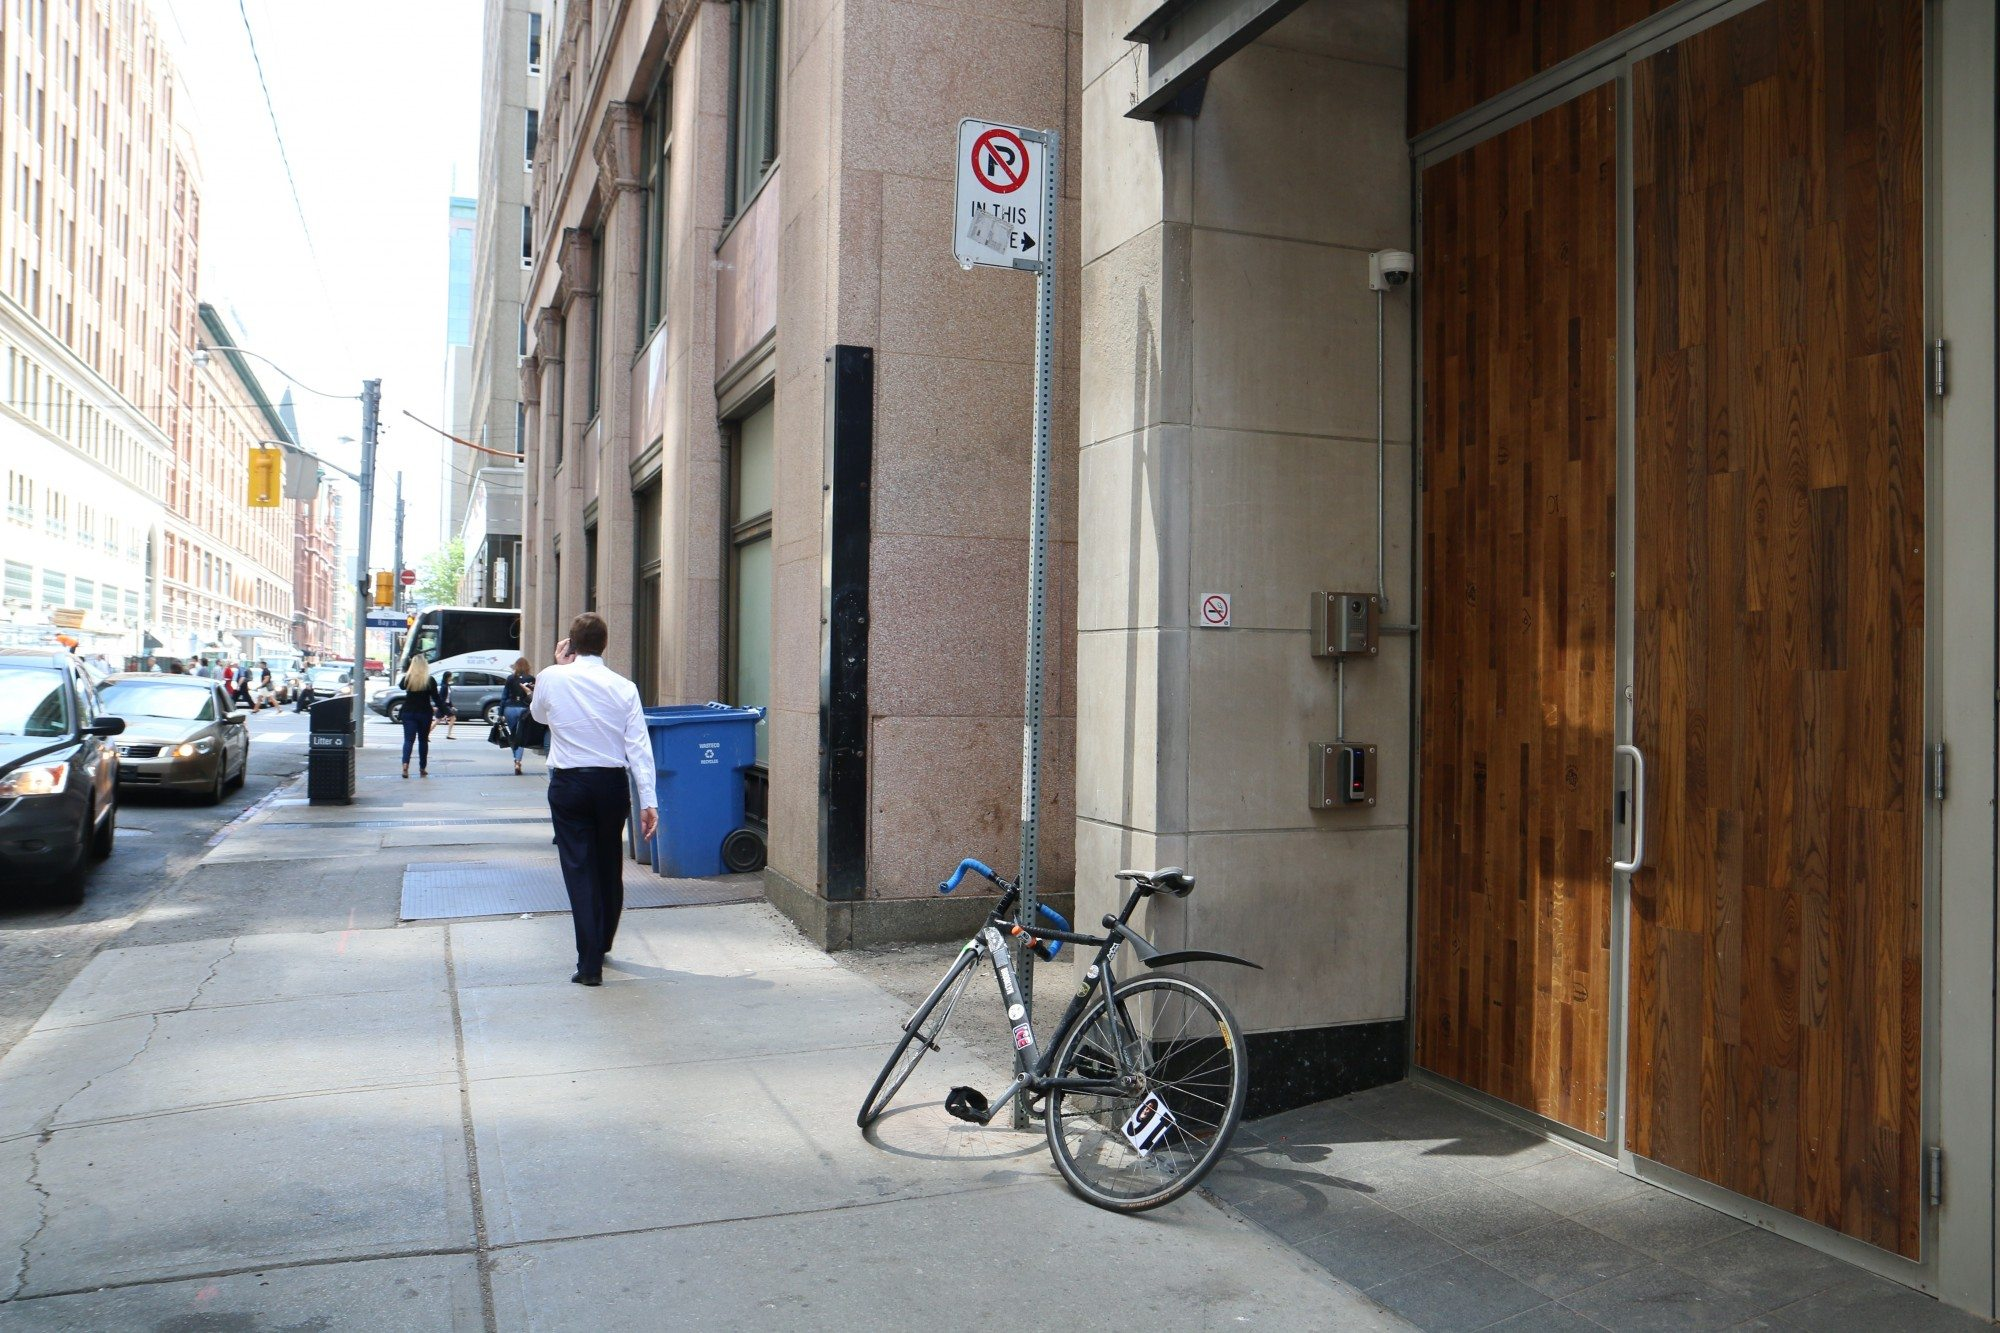 toronto-restaurants-clubs-the-private-wine-academy-financial-district-exterior